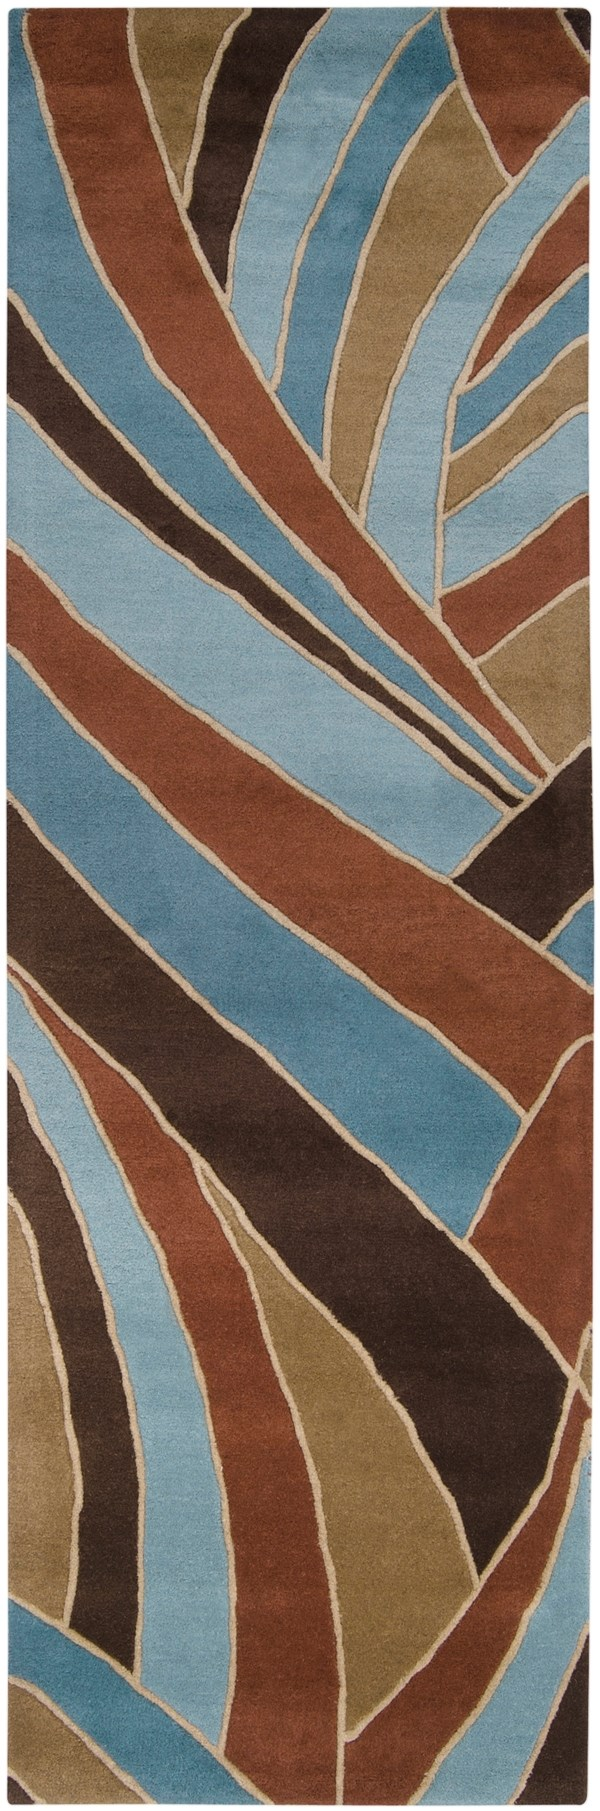 Surya Forum FM-7002 Rugs | Rugs Direct - ENLARGED VIEW